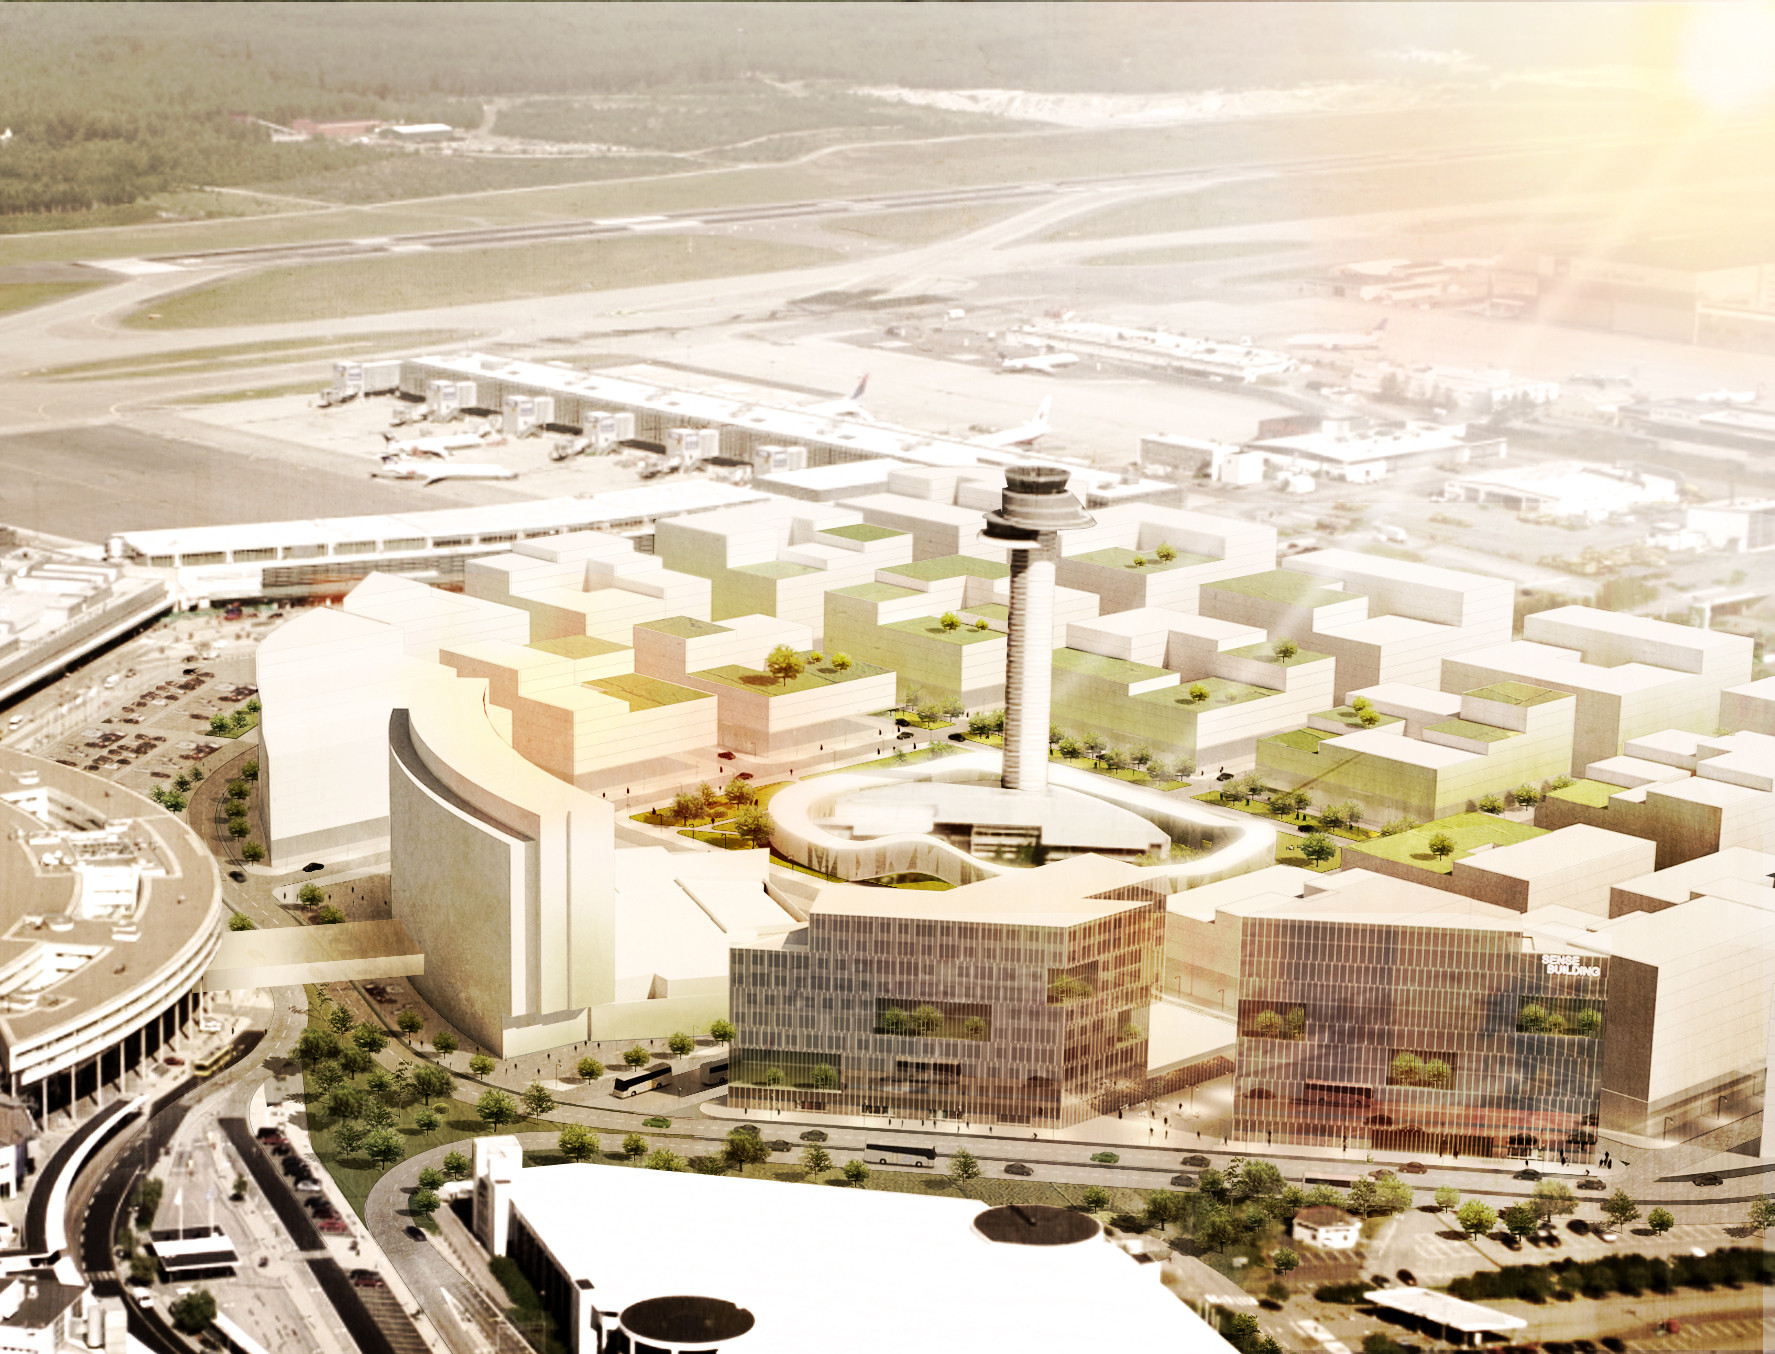 Airport City Stockholm Urban Design Strategy Proposal / Spacescape, Courtesy DinellJohansson & Spacescape